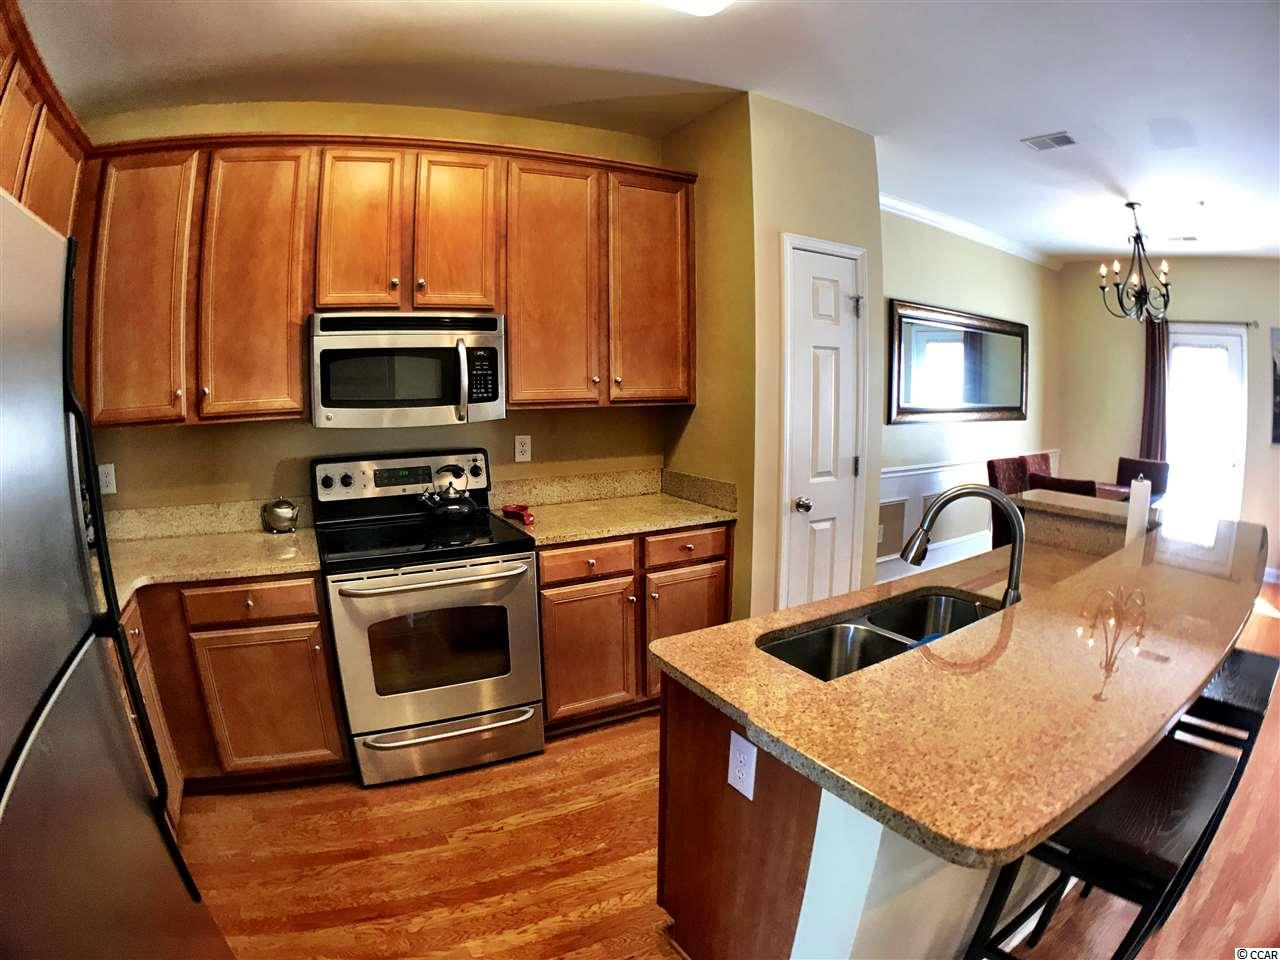 Check out this 3 bedroom condo at  St. James Square - Myrtle Beach